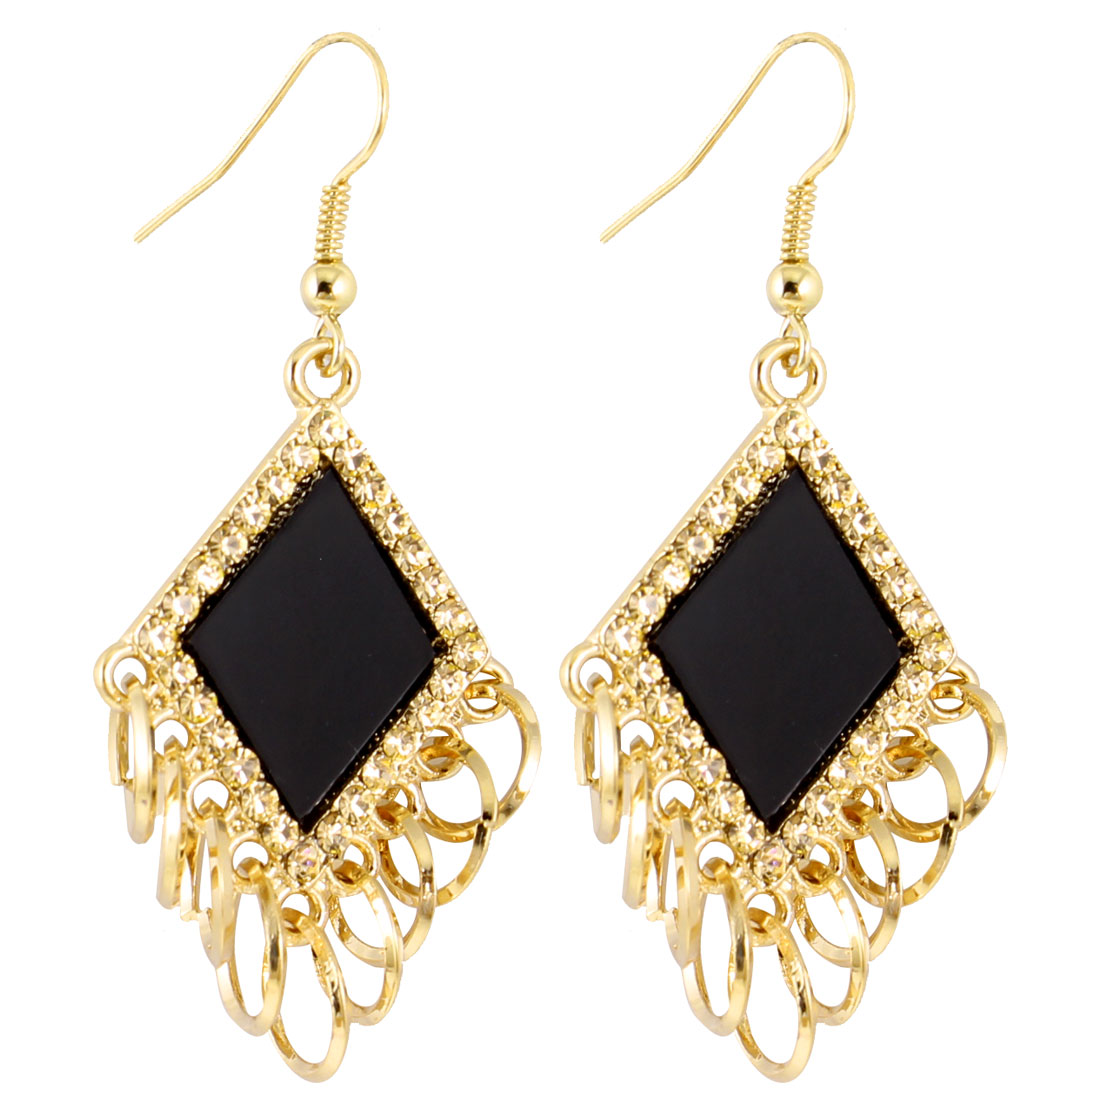 Pair Gold Tone Circles Pendant Black Fish Hook Earrings for Lady